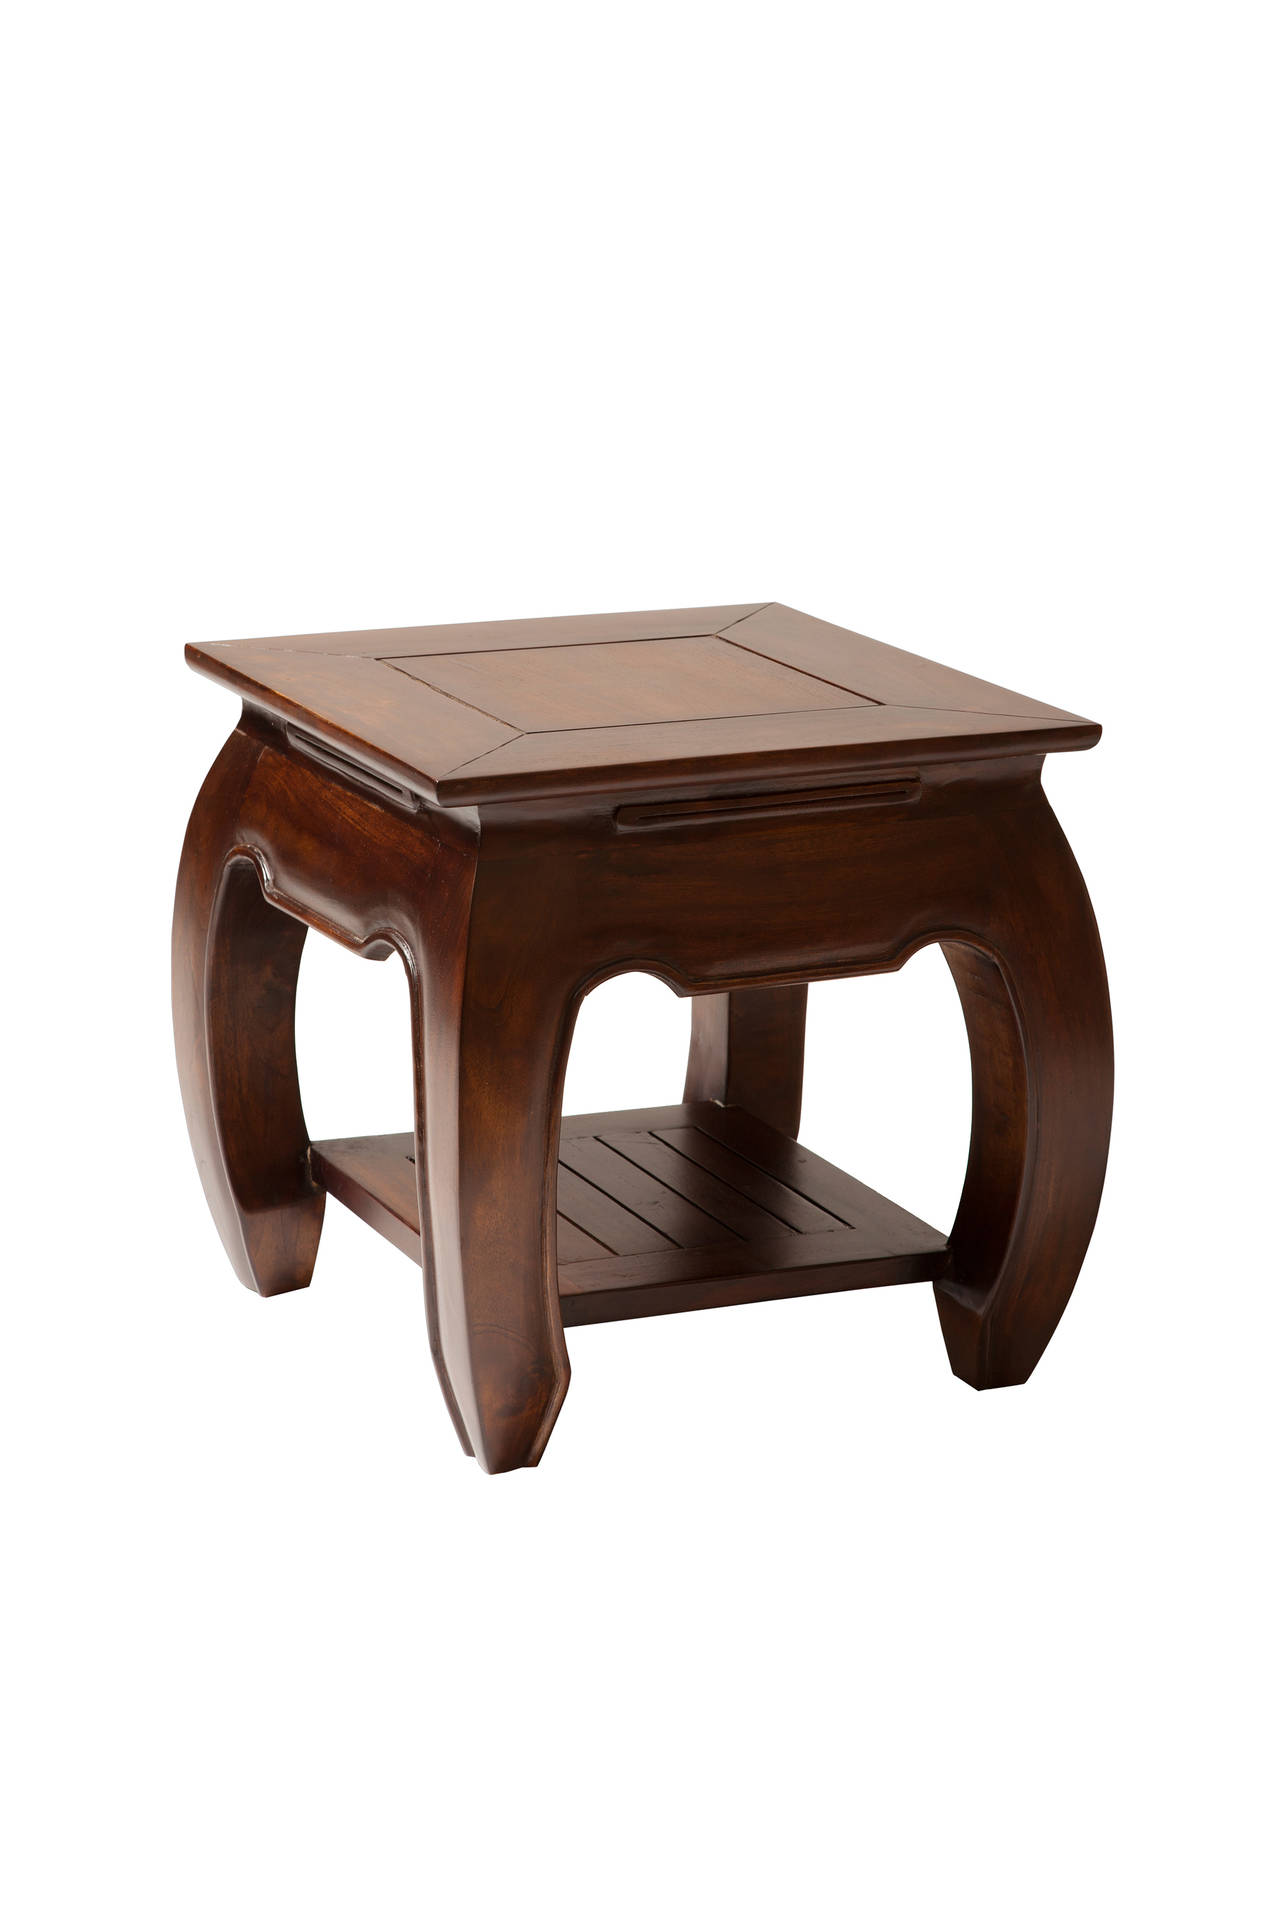 OPIUM SIDE TABLE 50